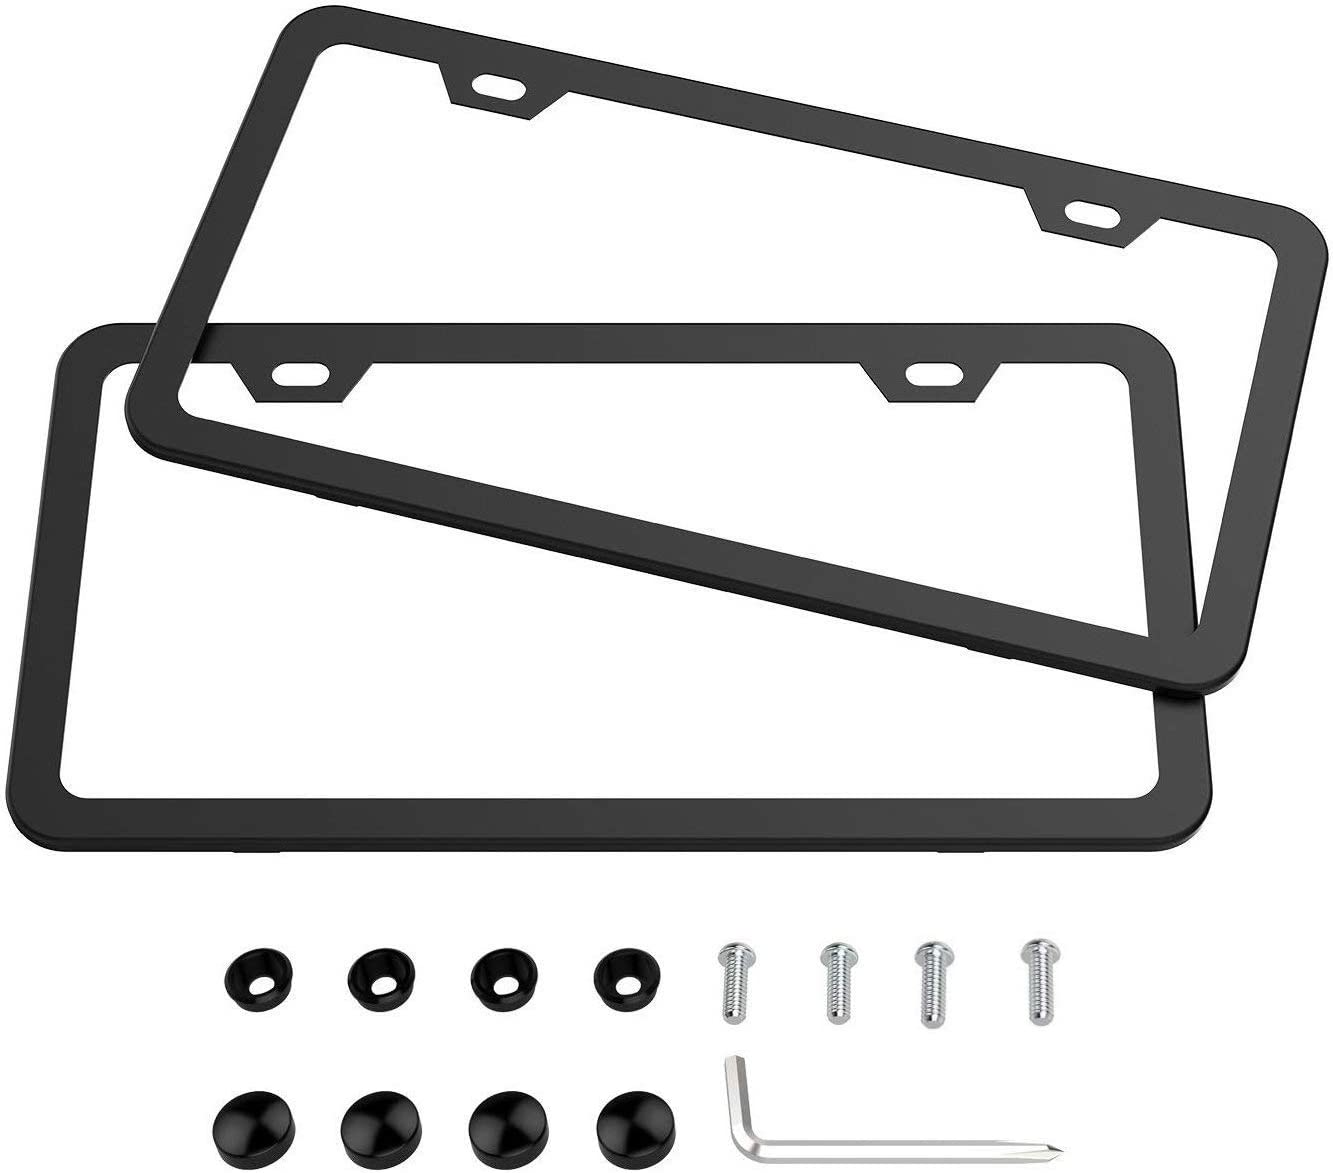 Car Truck Supercharged License Plate Frame Cover 6x12